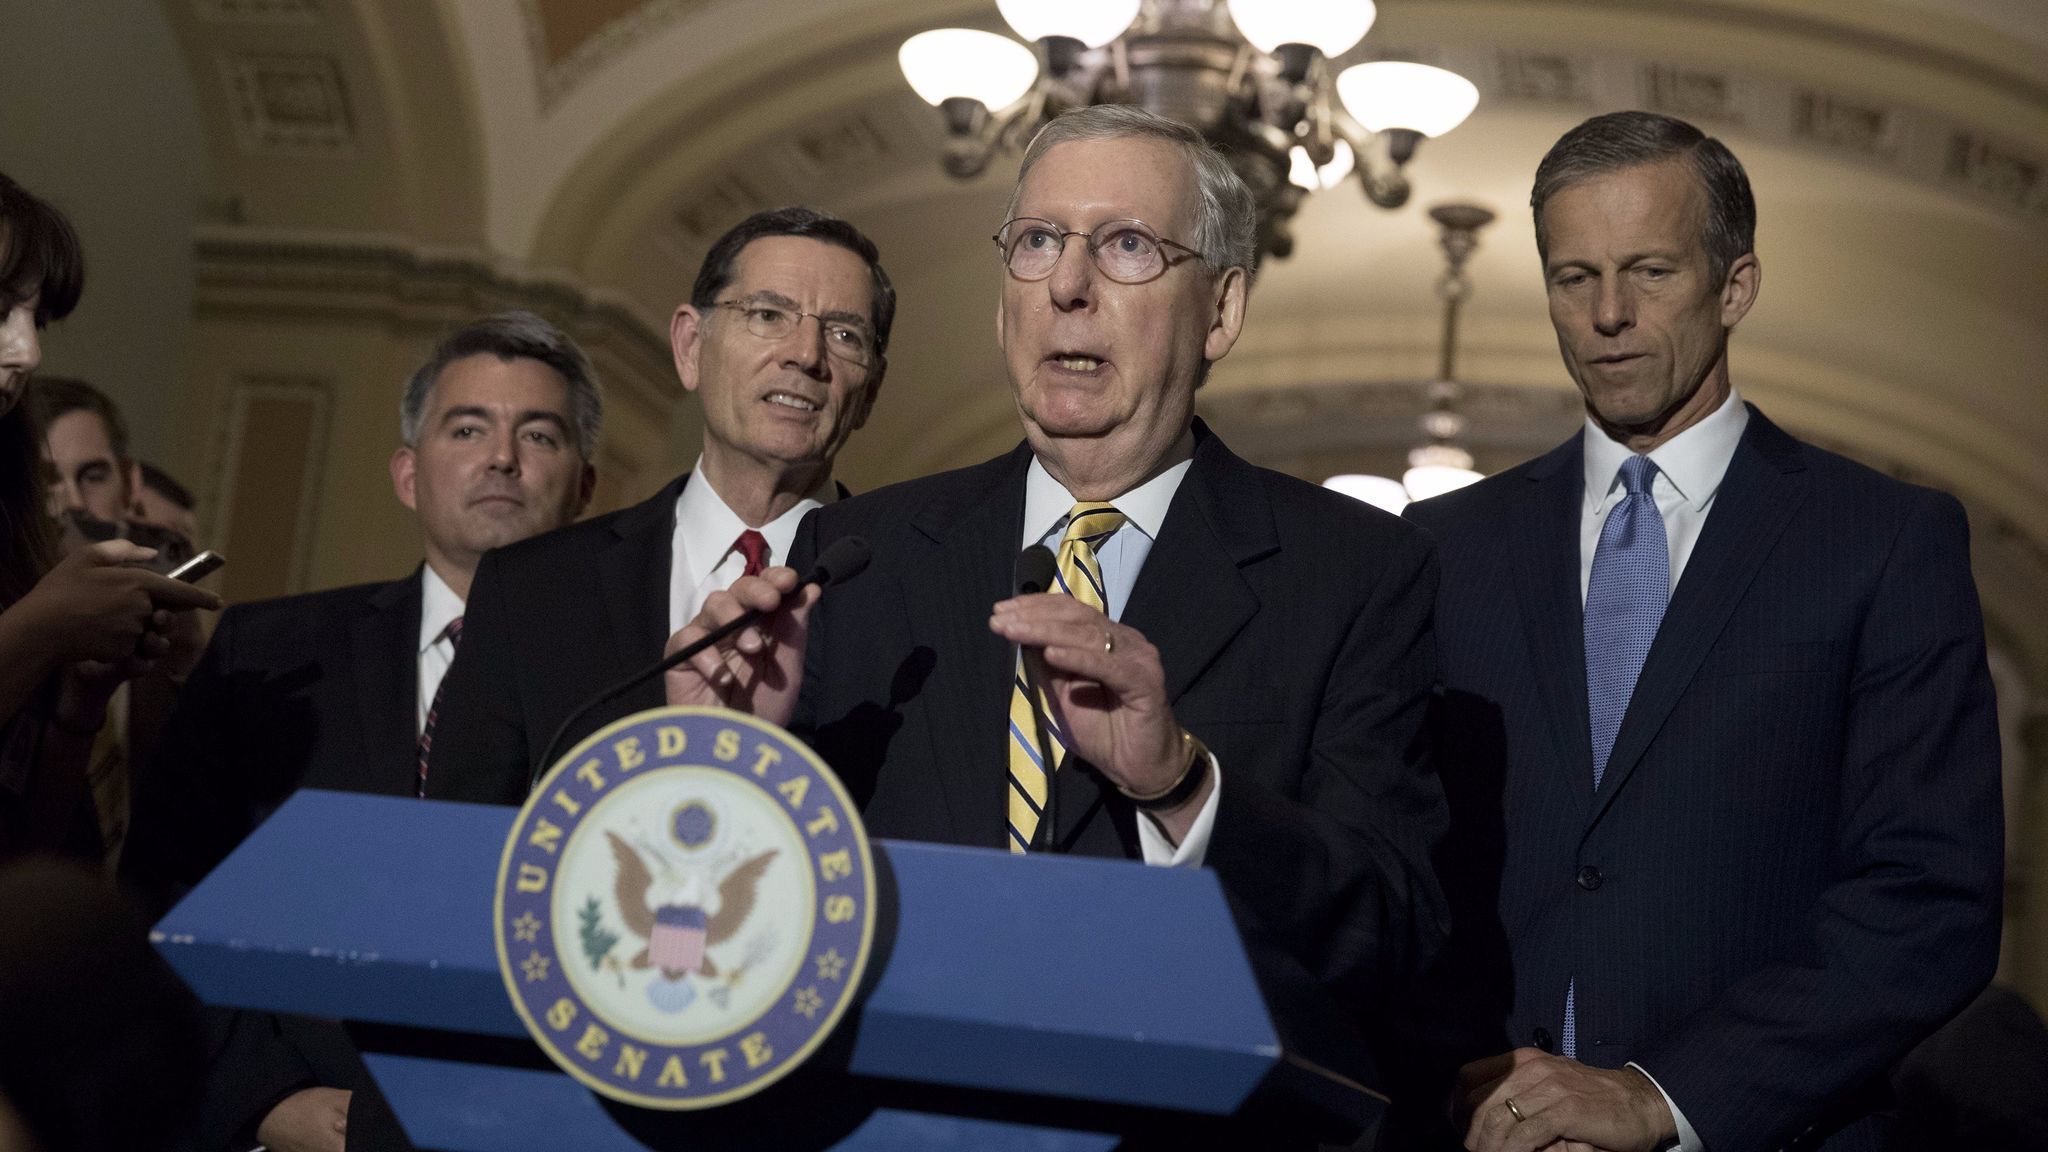 Senate Majority Leader Mitch McConnell (R-Ky.), flanked by Sen. Cory Gardner (R-Colo.), Sen. John Barrasso (R-Wyo.) and Sen. John Thune (R-S.D.), speaks to the media about the recent spending bill that averted a government shutdown.